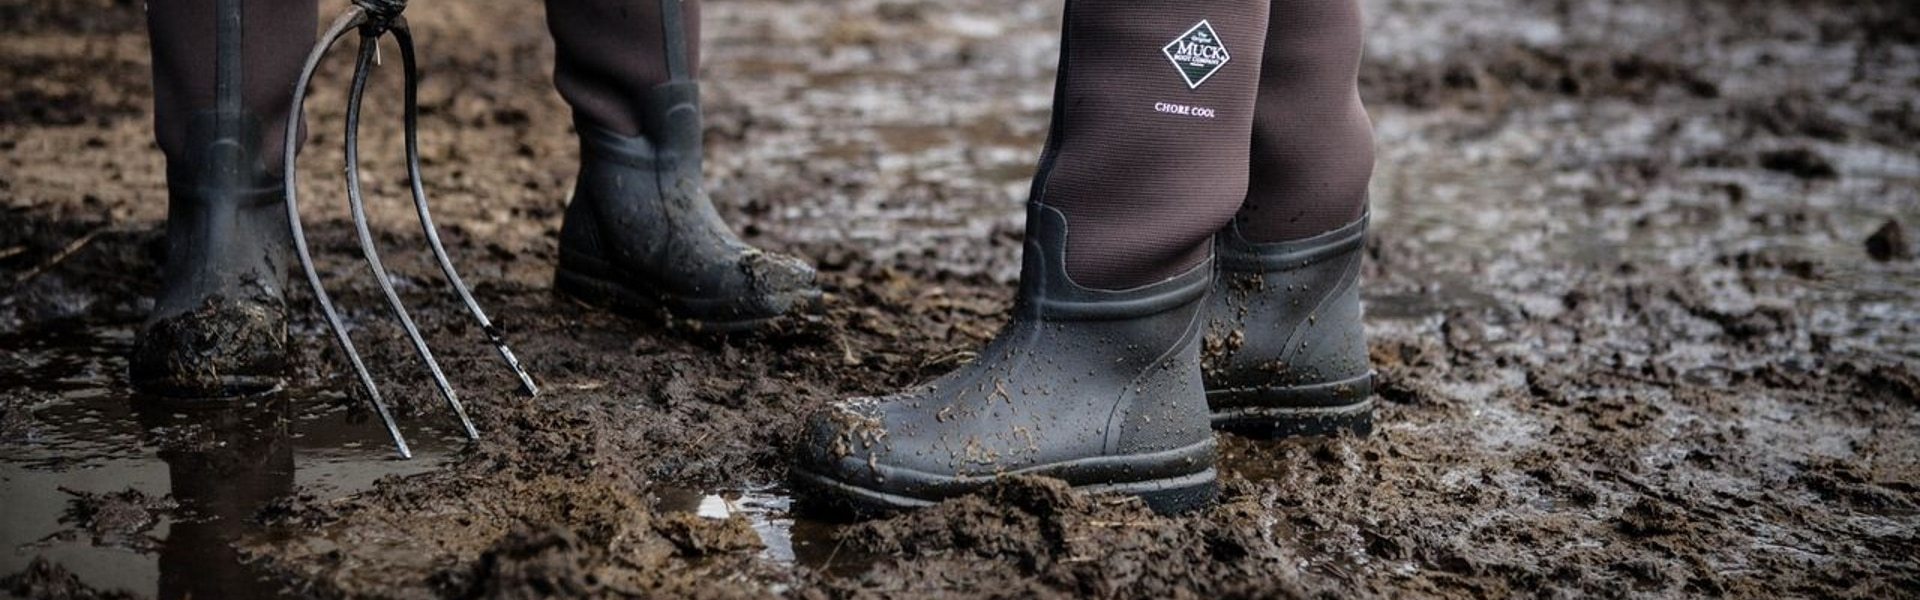 Best Rubber Hunting Boots Reviewed in Detail